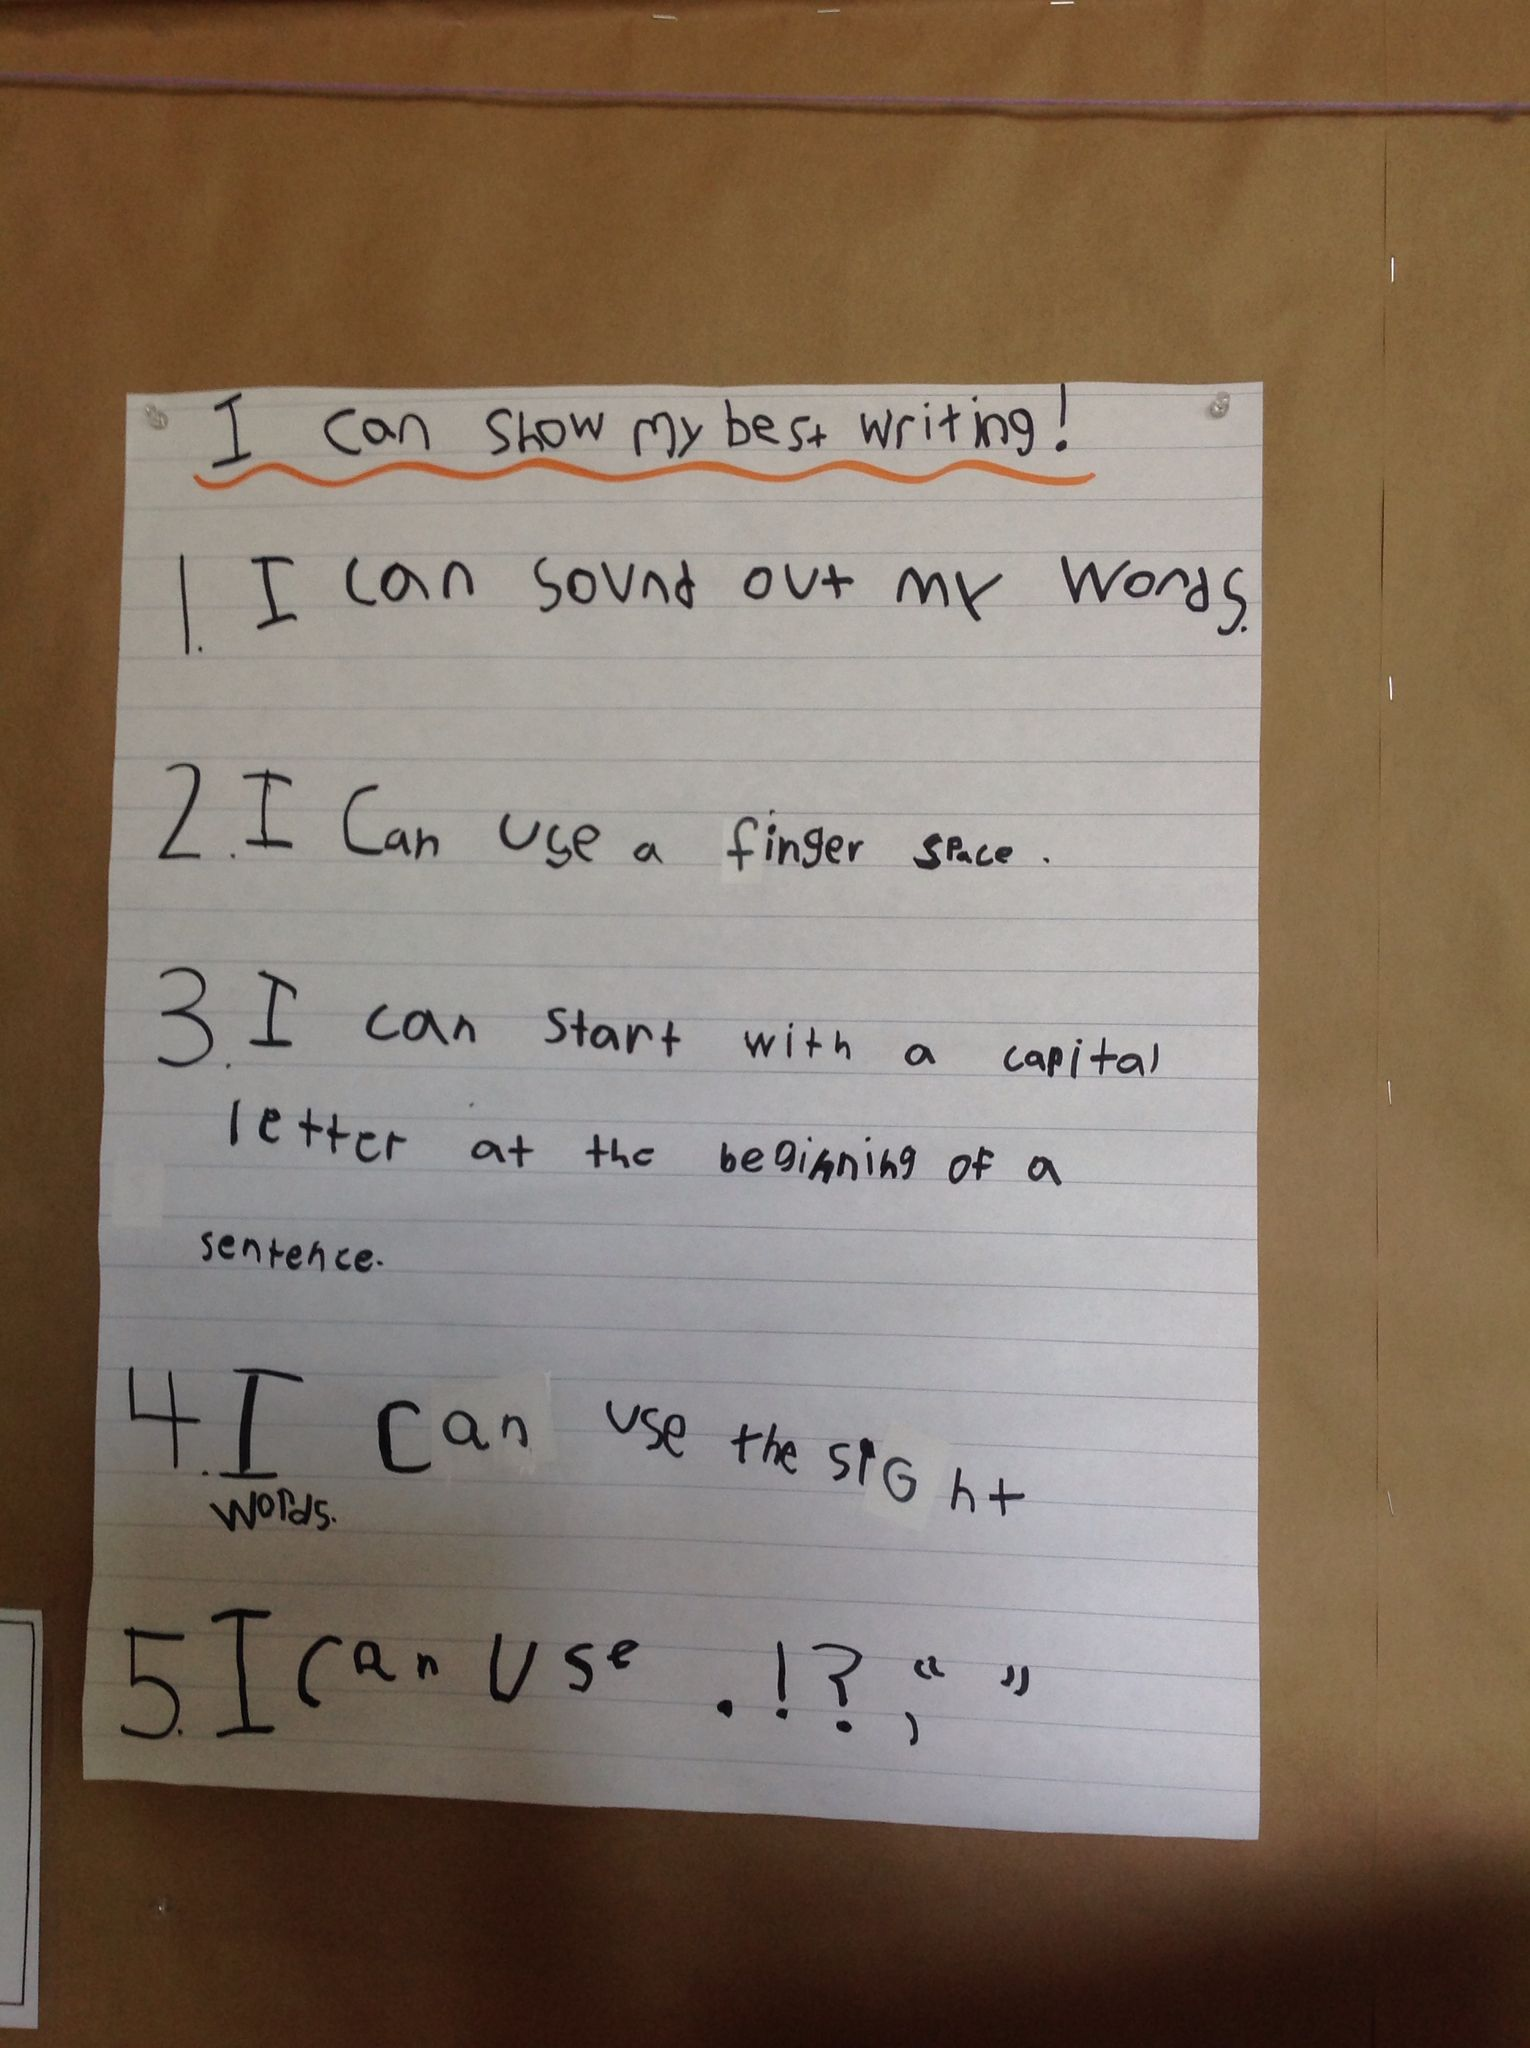 I Can Show My Best Writing Success Criteria